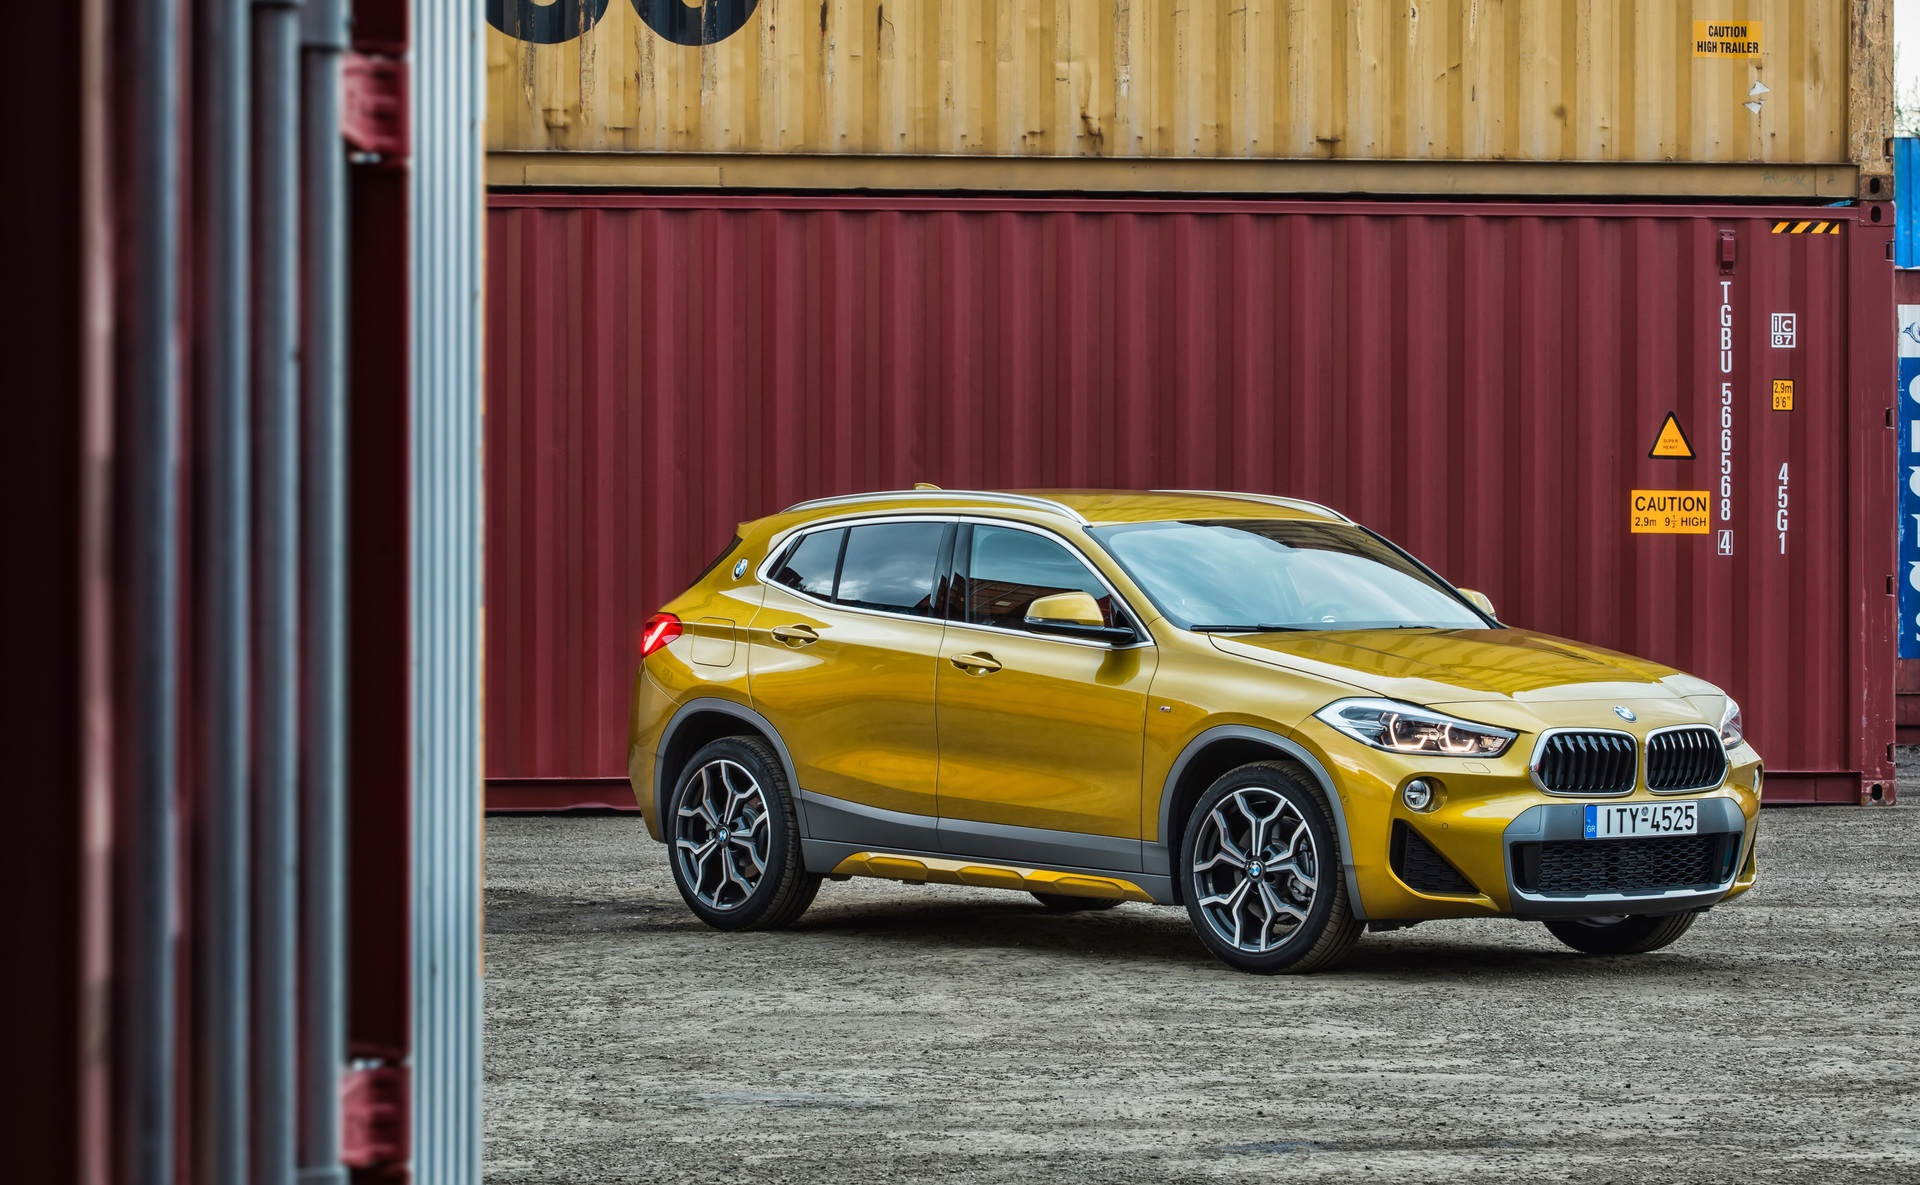 BMW_X2_Greek_presskit_0076